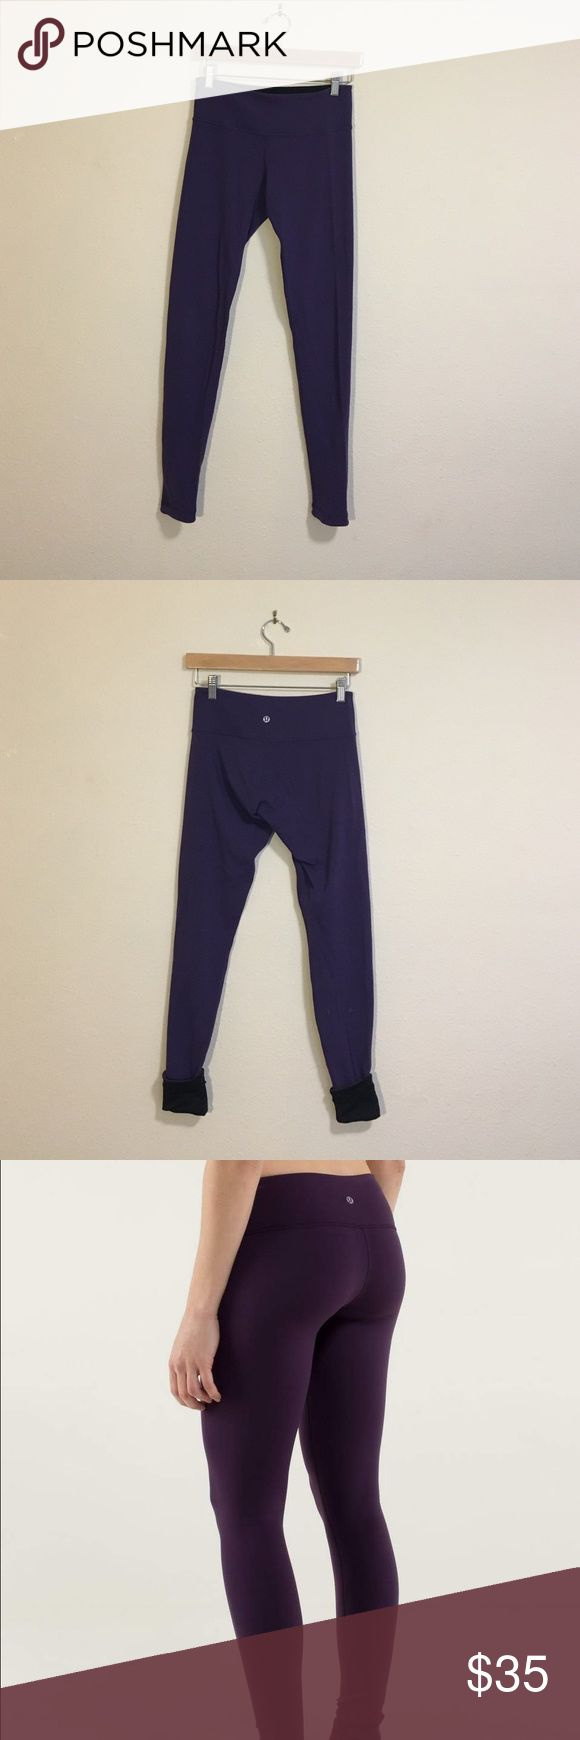 Lululemon dark purple reversible wunder unders Lightly worn dark purple lululemon reversible wunder unders.  The reverse color is black.  These are the thicker wunder unders so they are perfect for the colder weather.  There is very minimal pilling.  Good condition. lululemon athletica Pants